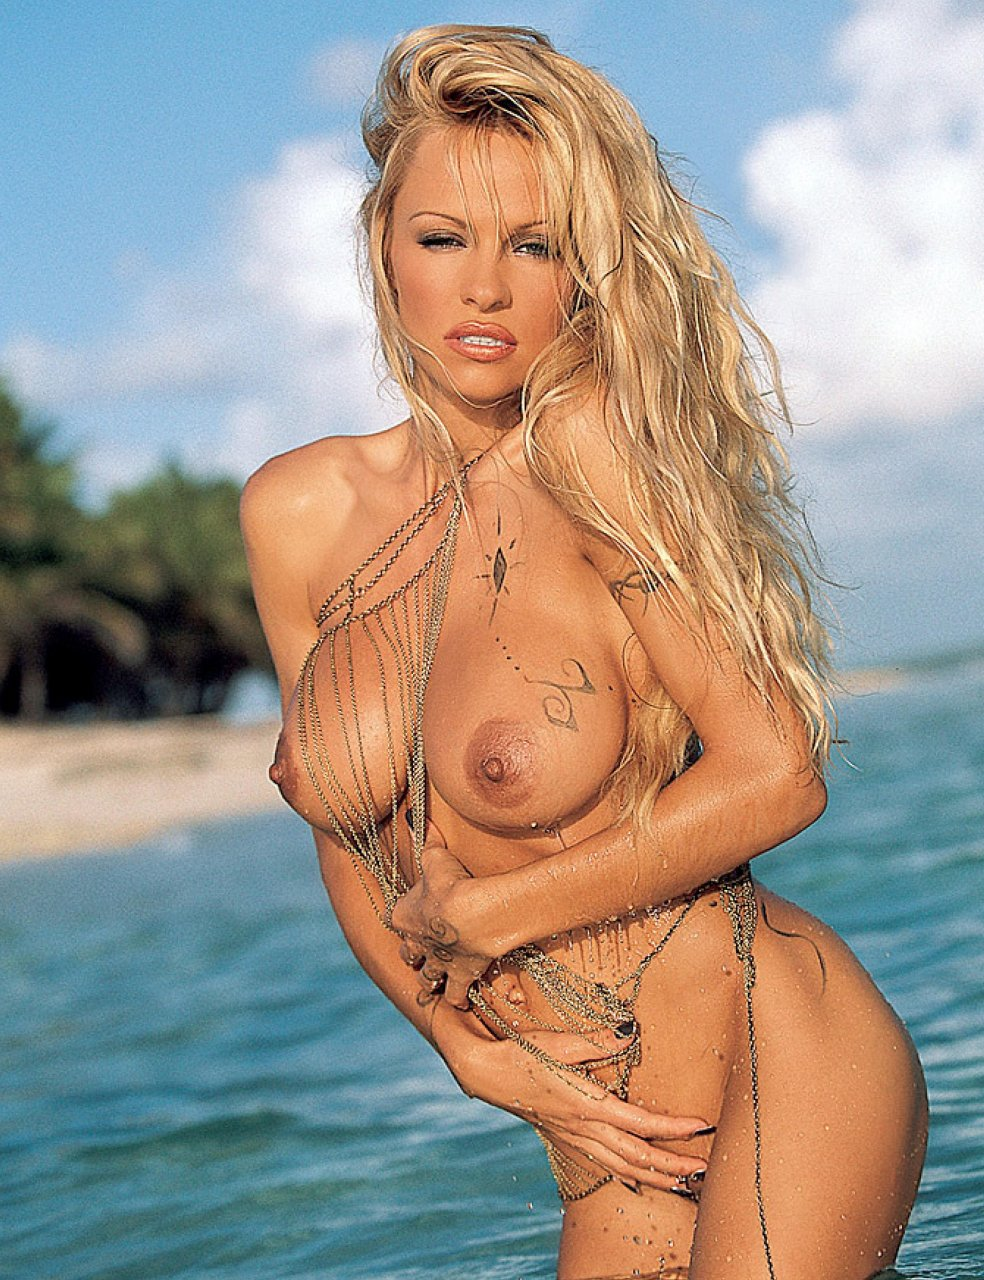 Sorry, that Pamella anderson boobs consider